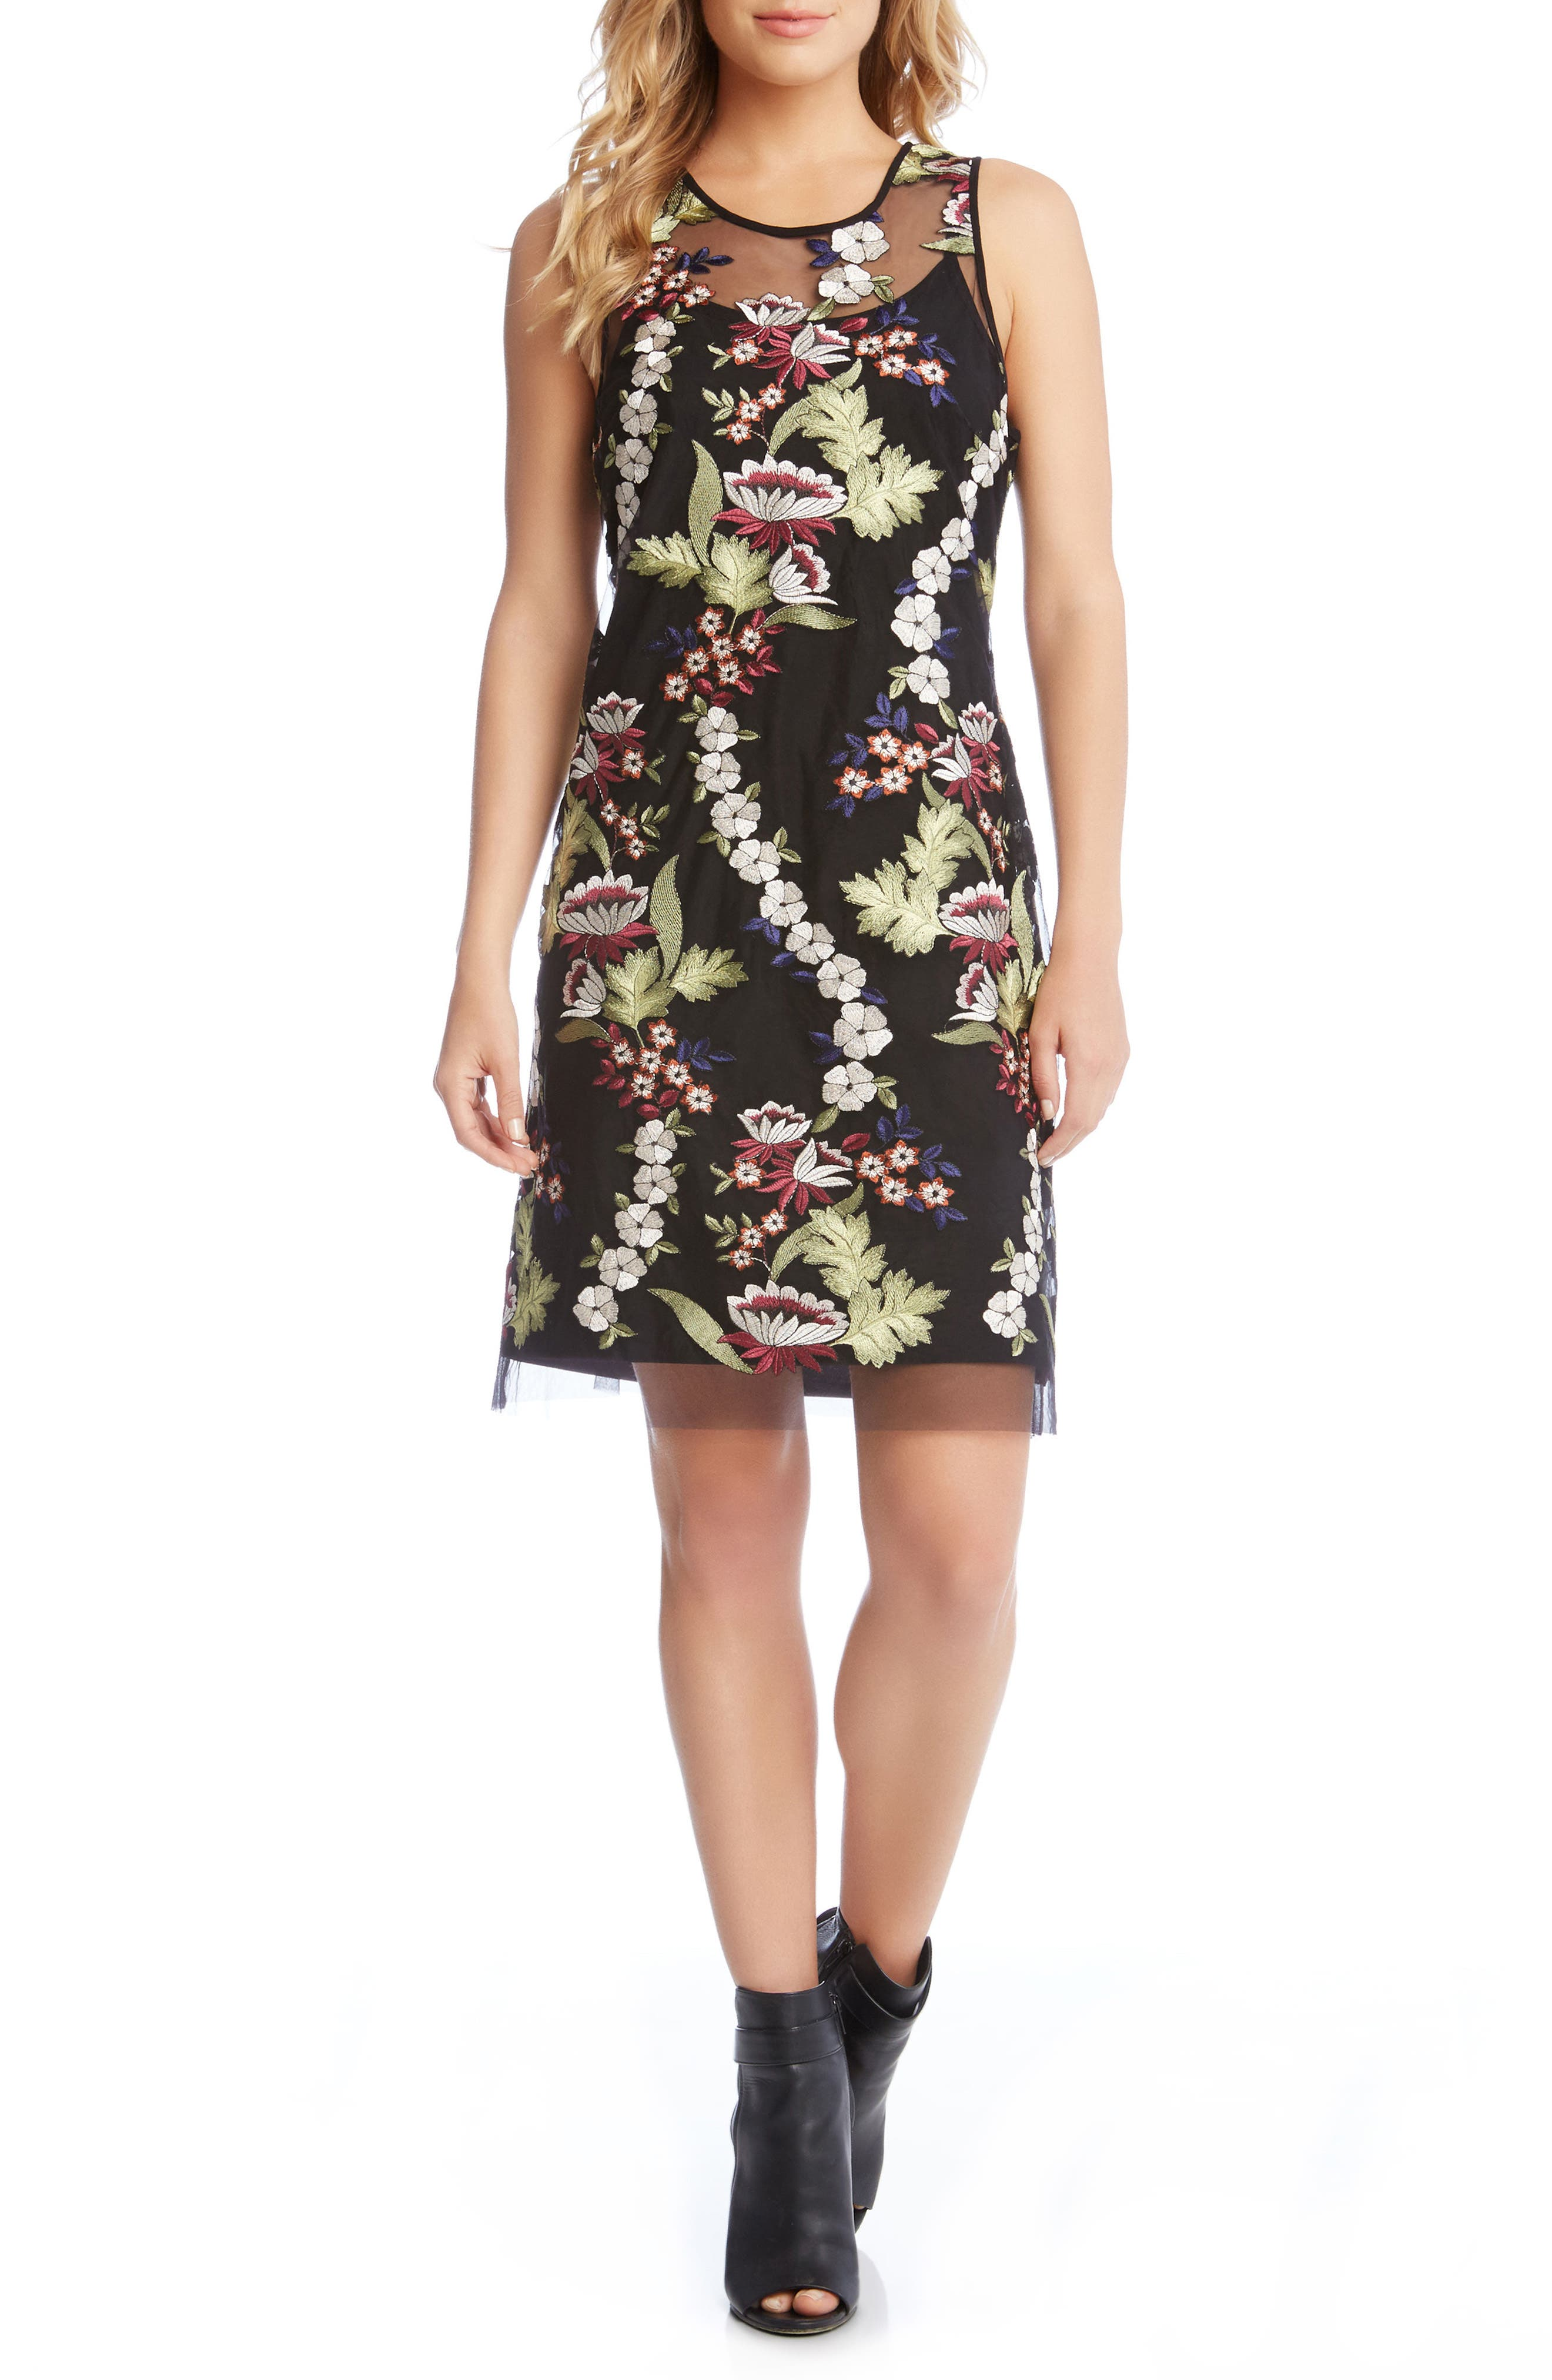 Topshop womens dresses maternity wear nordstrom ombrellifo Images